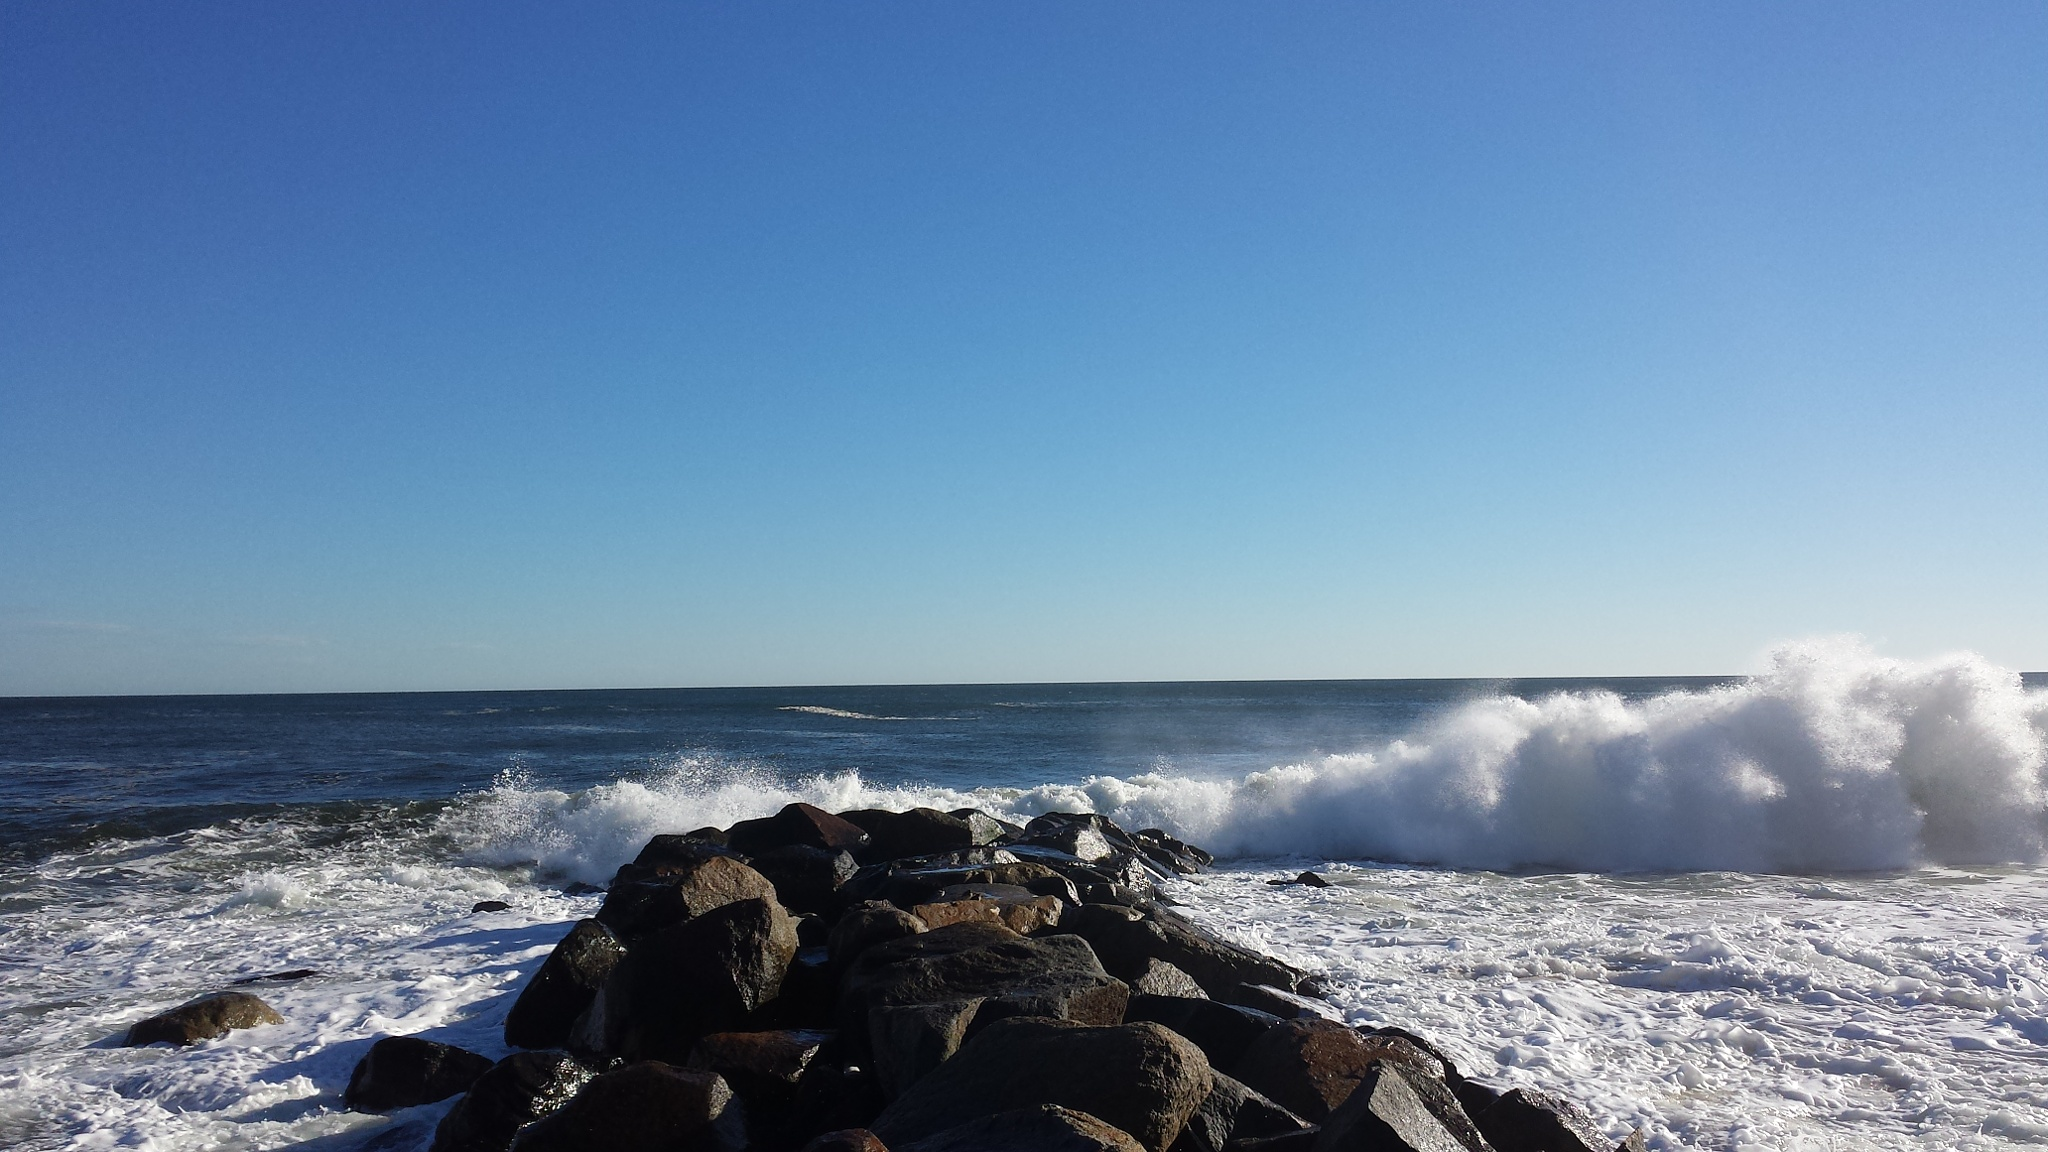 Great Powers Of The Ocean... by Cary J.Casse